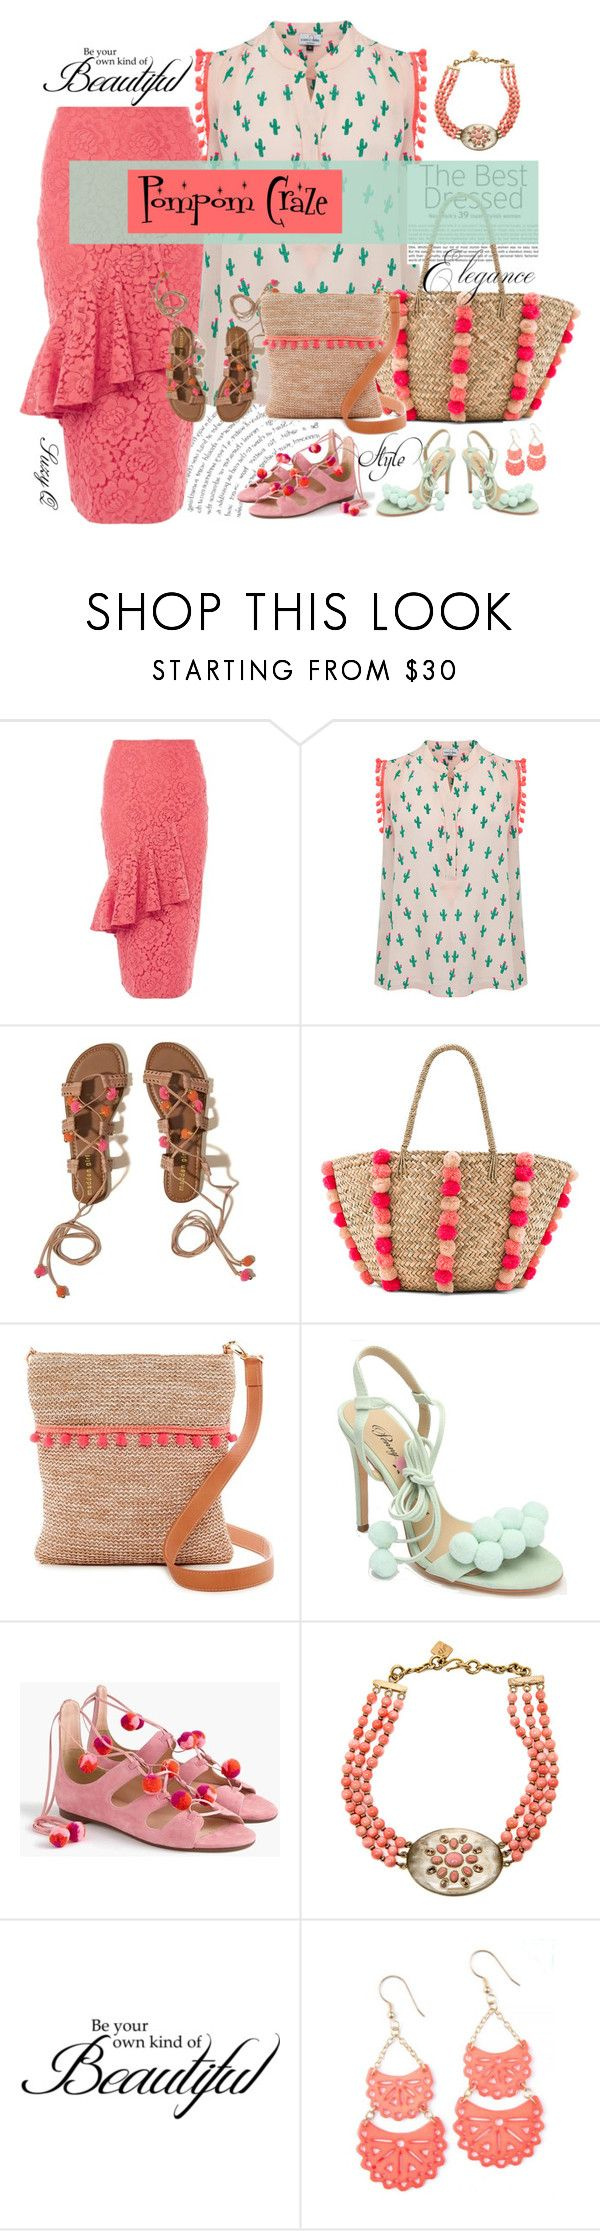 """""""POMPOM CRAZE"""" by polyvore-suzyq ❤ liked on Polyvore featuring Hope and Ivy, Mercy Delta, Hollister Co., Seafolly, SR Squared by Sondra Roberts, Penny Loves Kenny, J.Crew and WALL"""